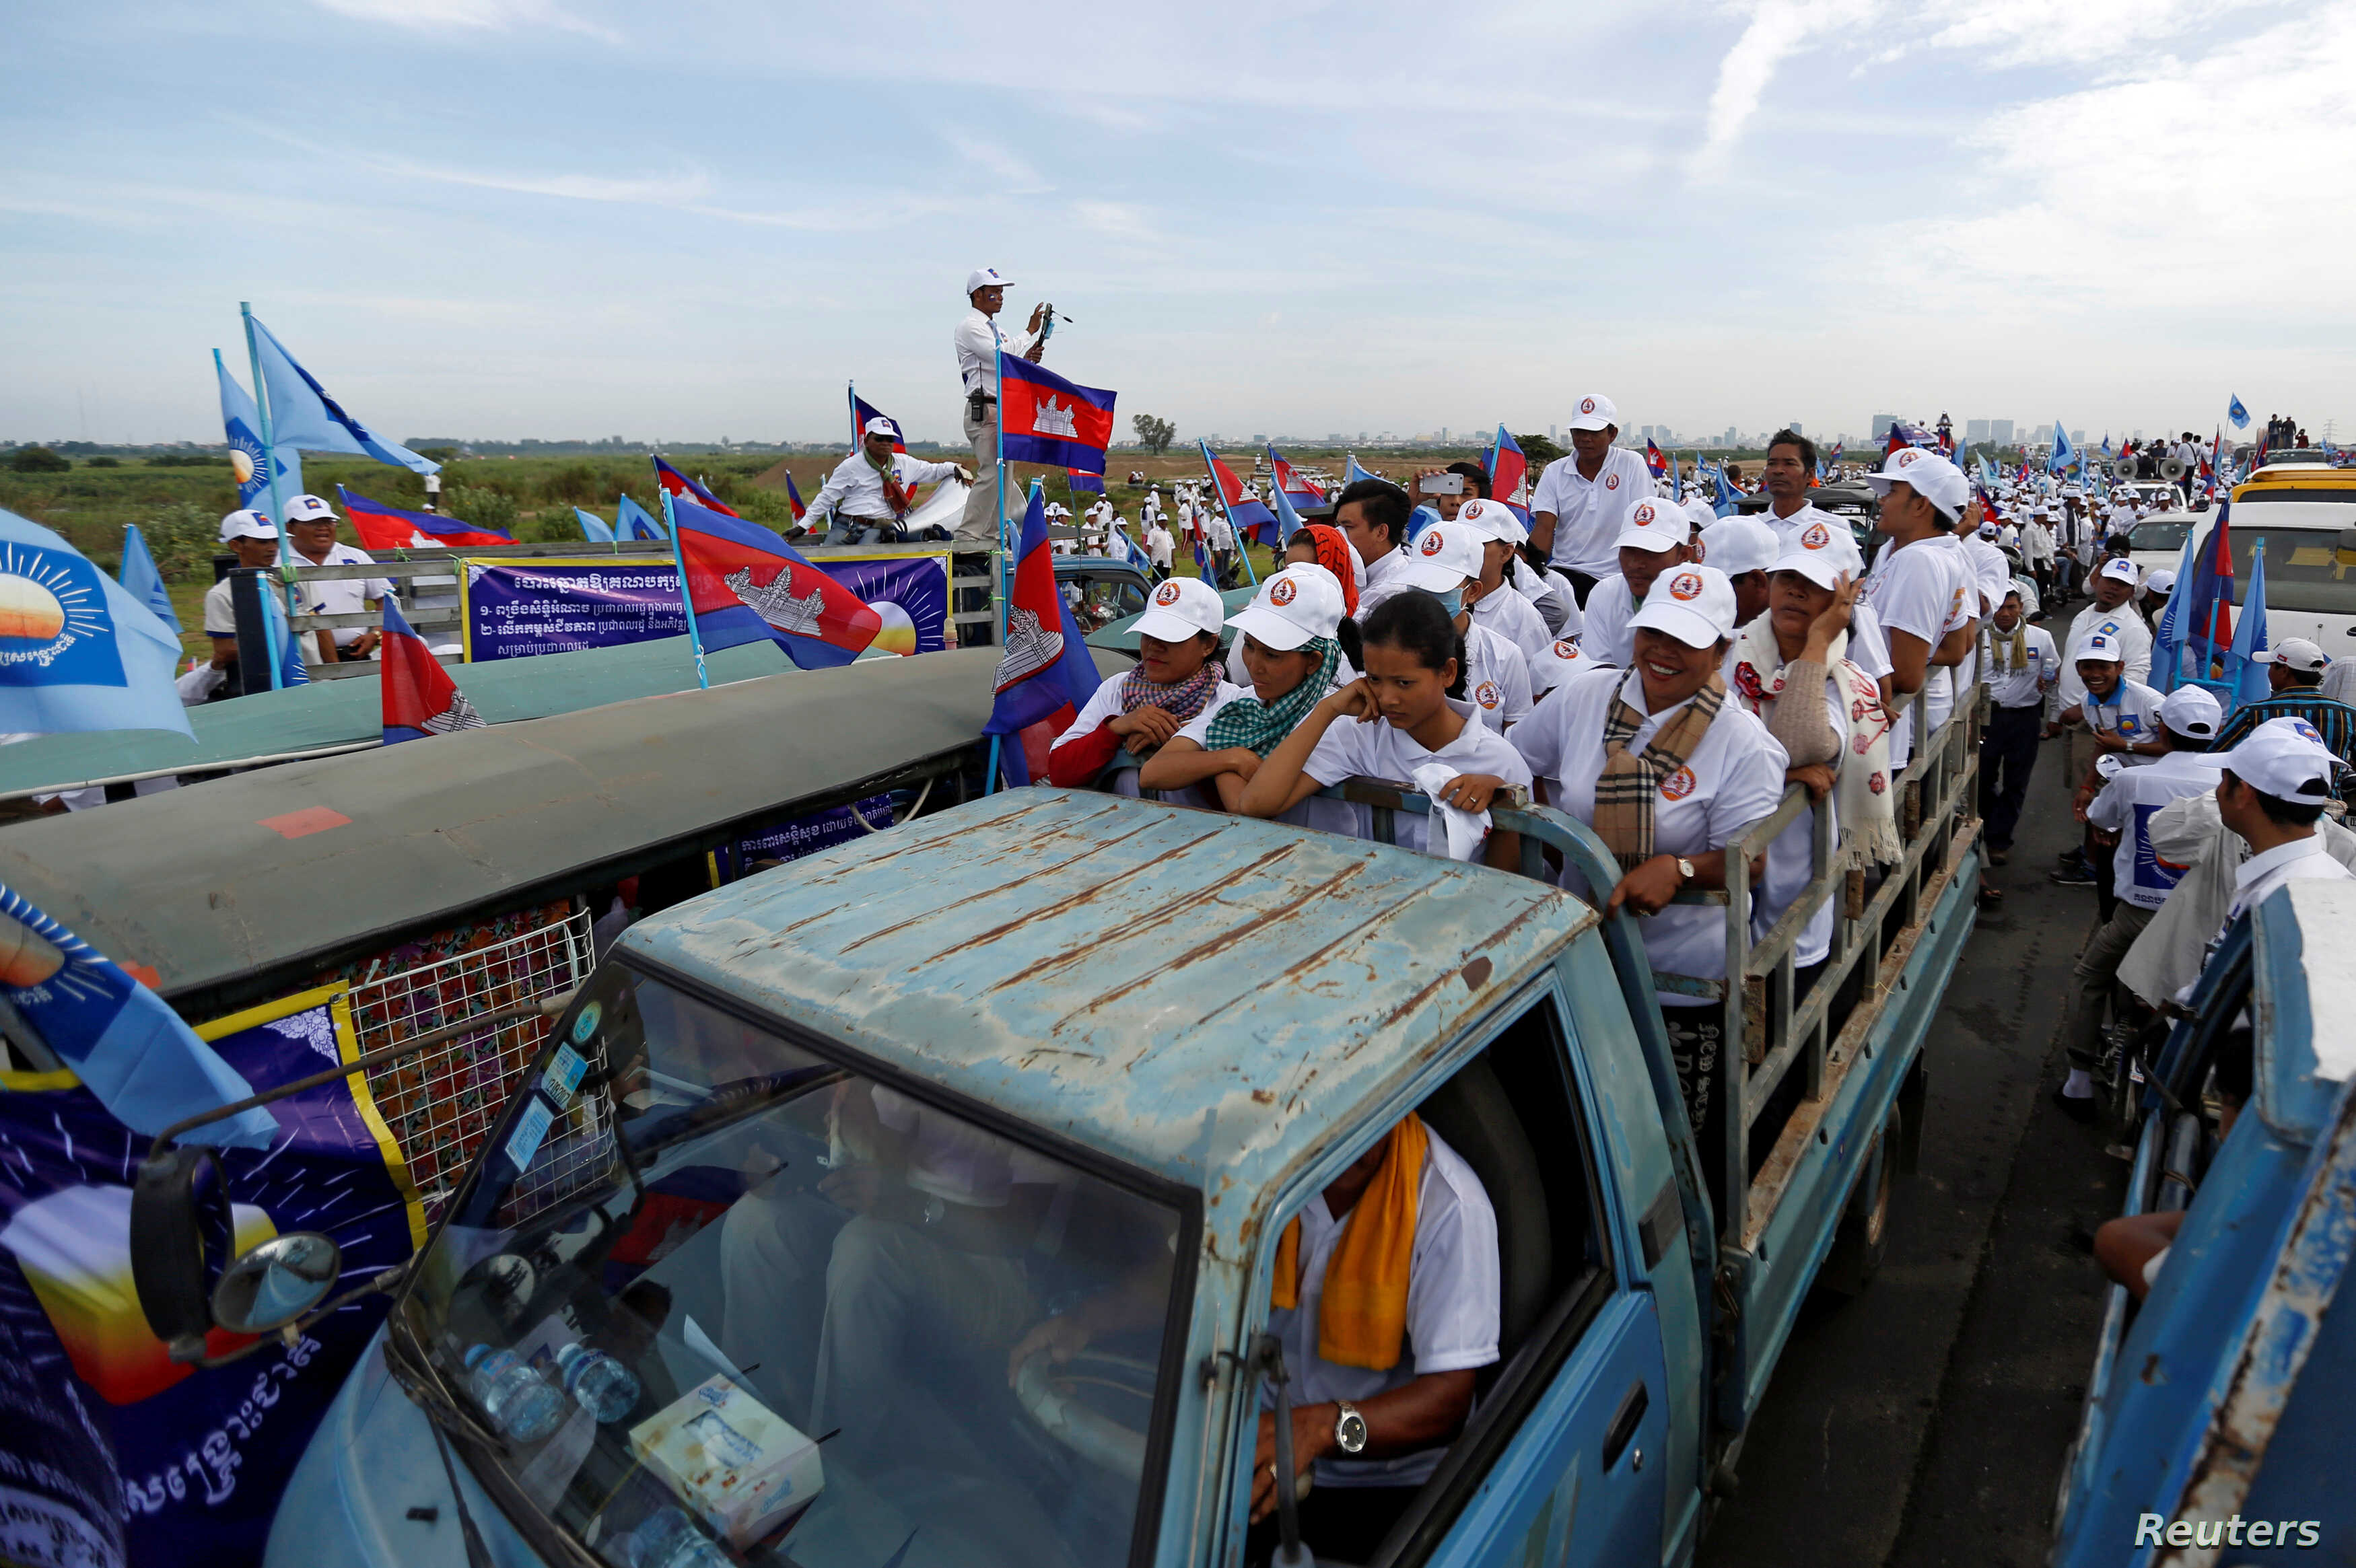 Supporters of the Cambodian People's Party (CPP) stand on a truck as they are surrounded by supporters of the Cambodia National Rescue Party (CNRP) during a local election campaign in Phnom Penh, Cambodia May 20, 2017.